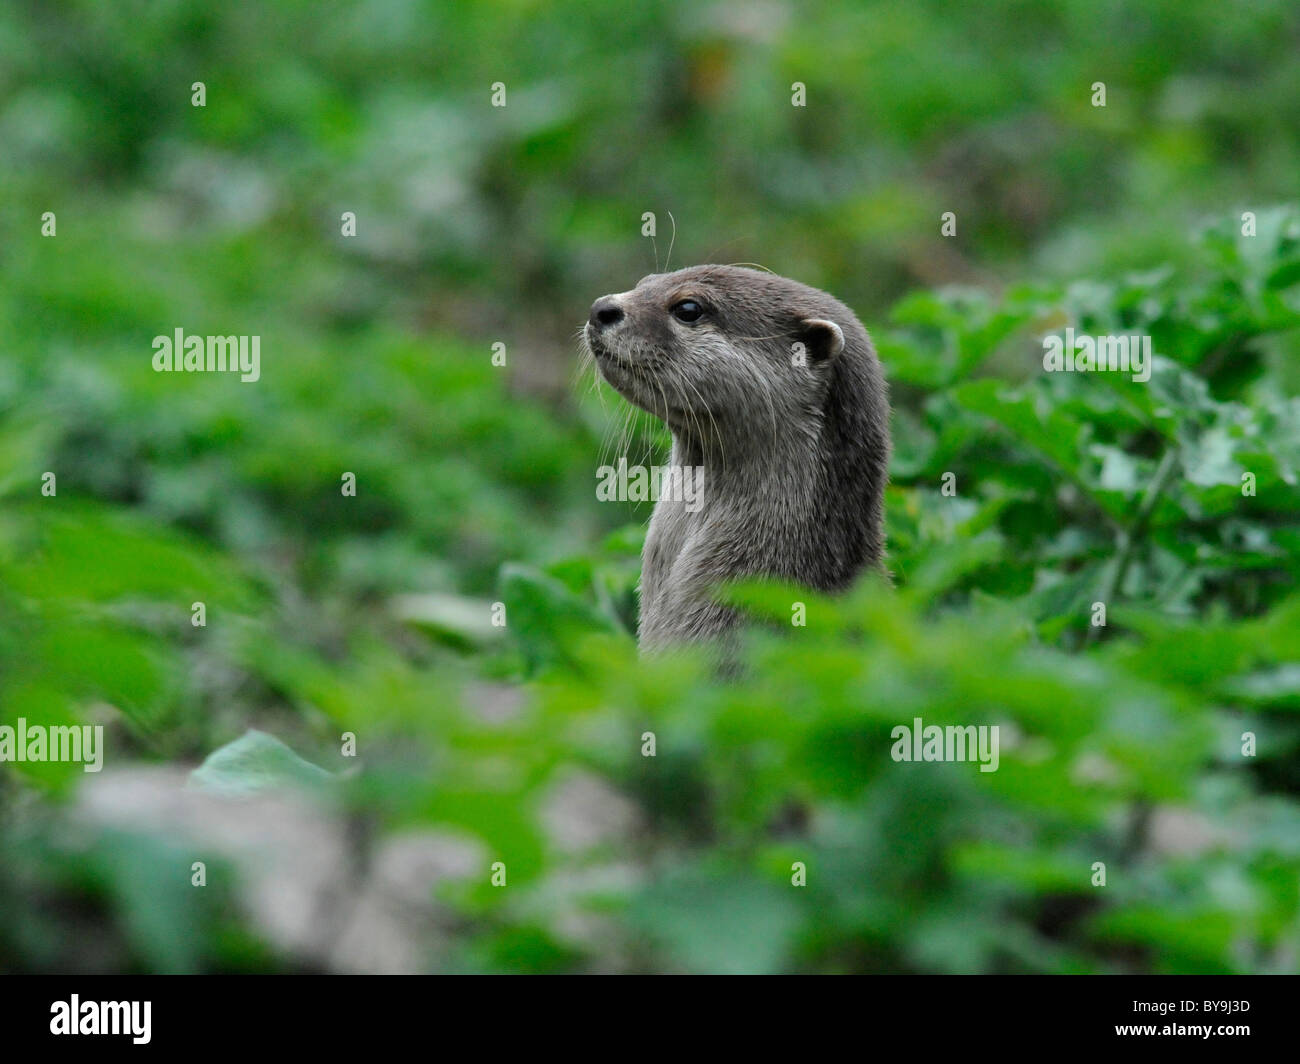 A wild otter popping his head out from the undergrowth. Stock Photo